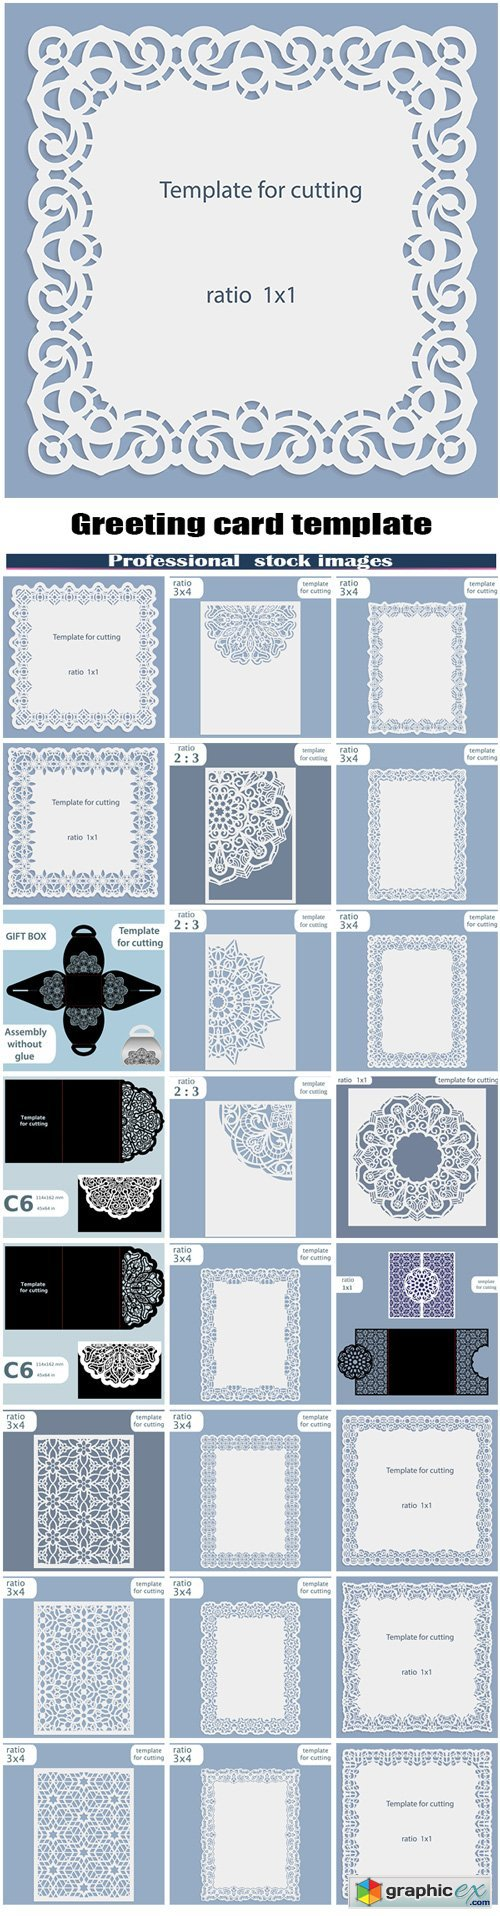 Greeting card template for cutting plotter #5